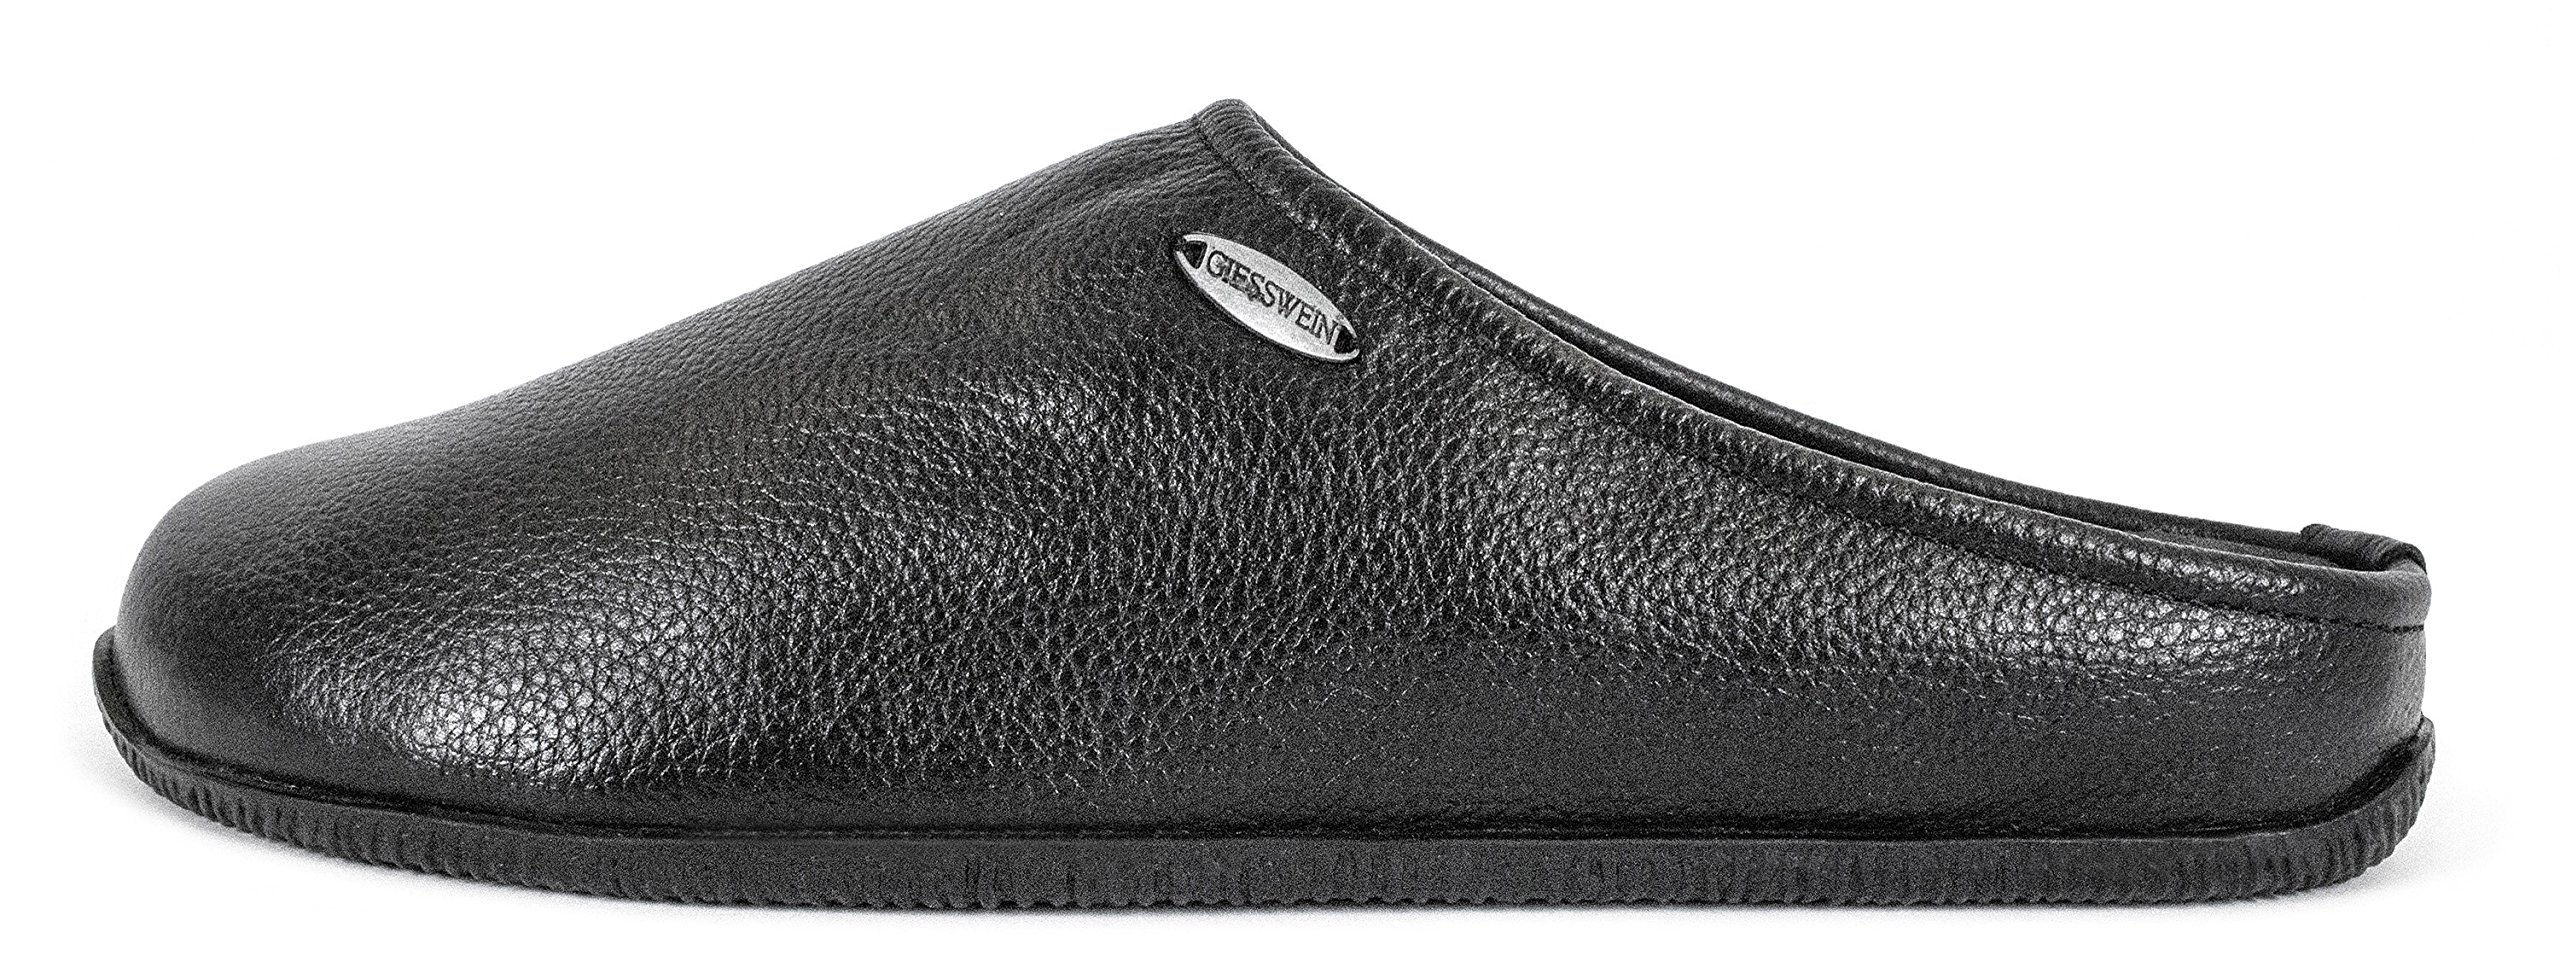 Giesswein Slippers Milo Black